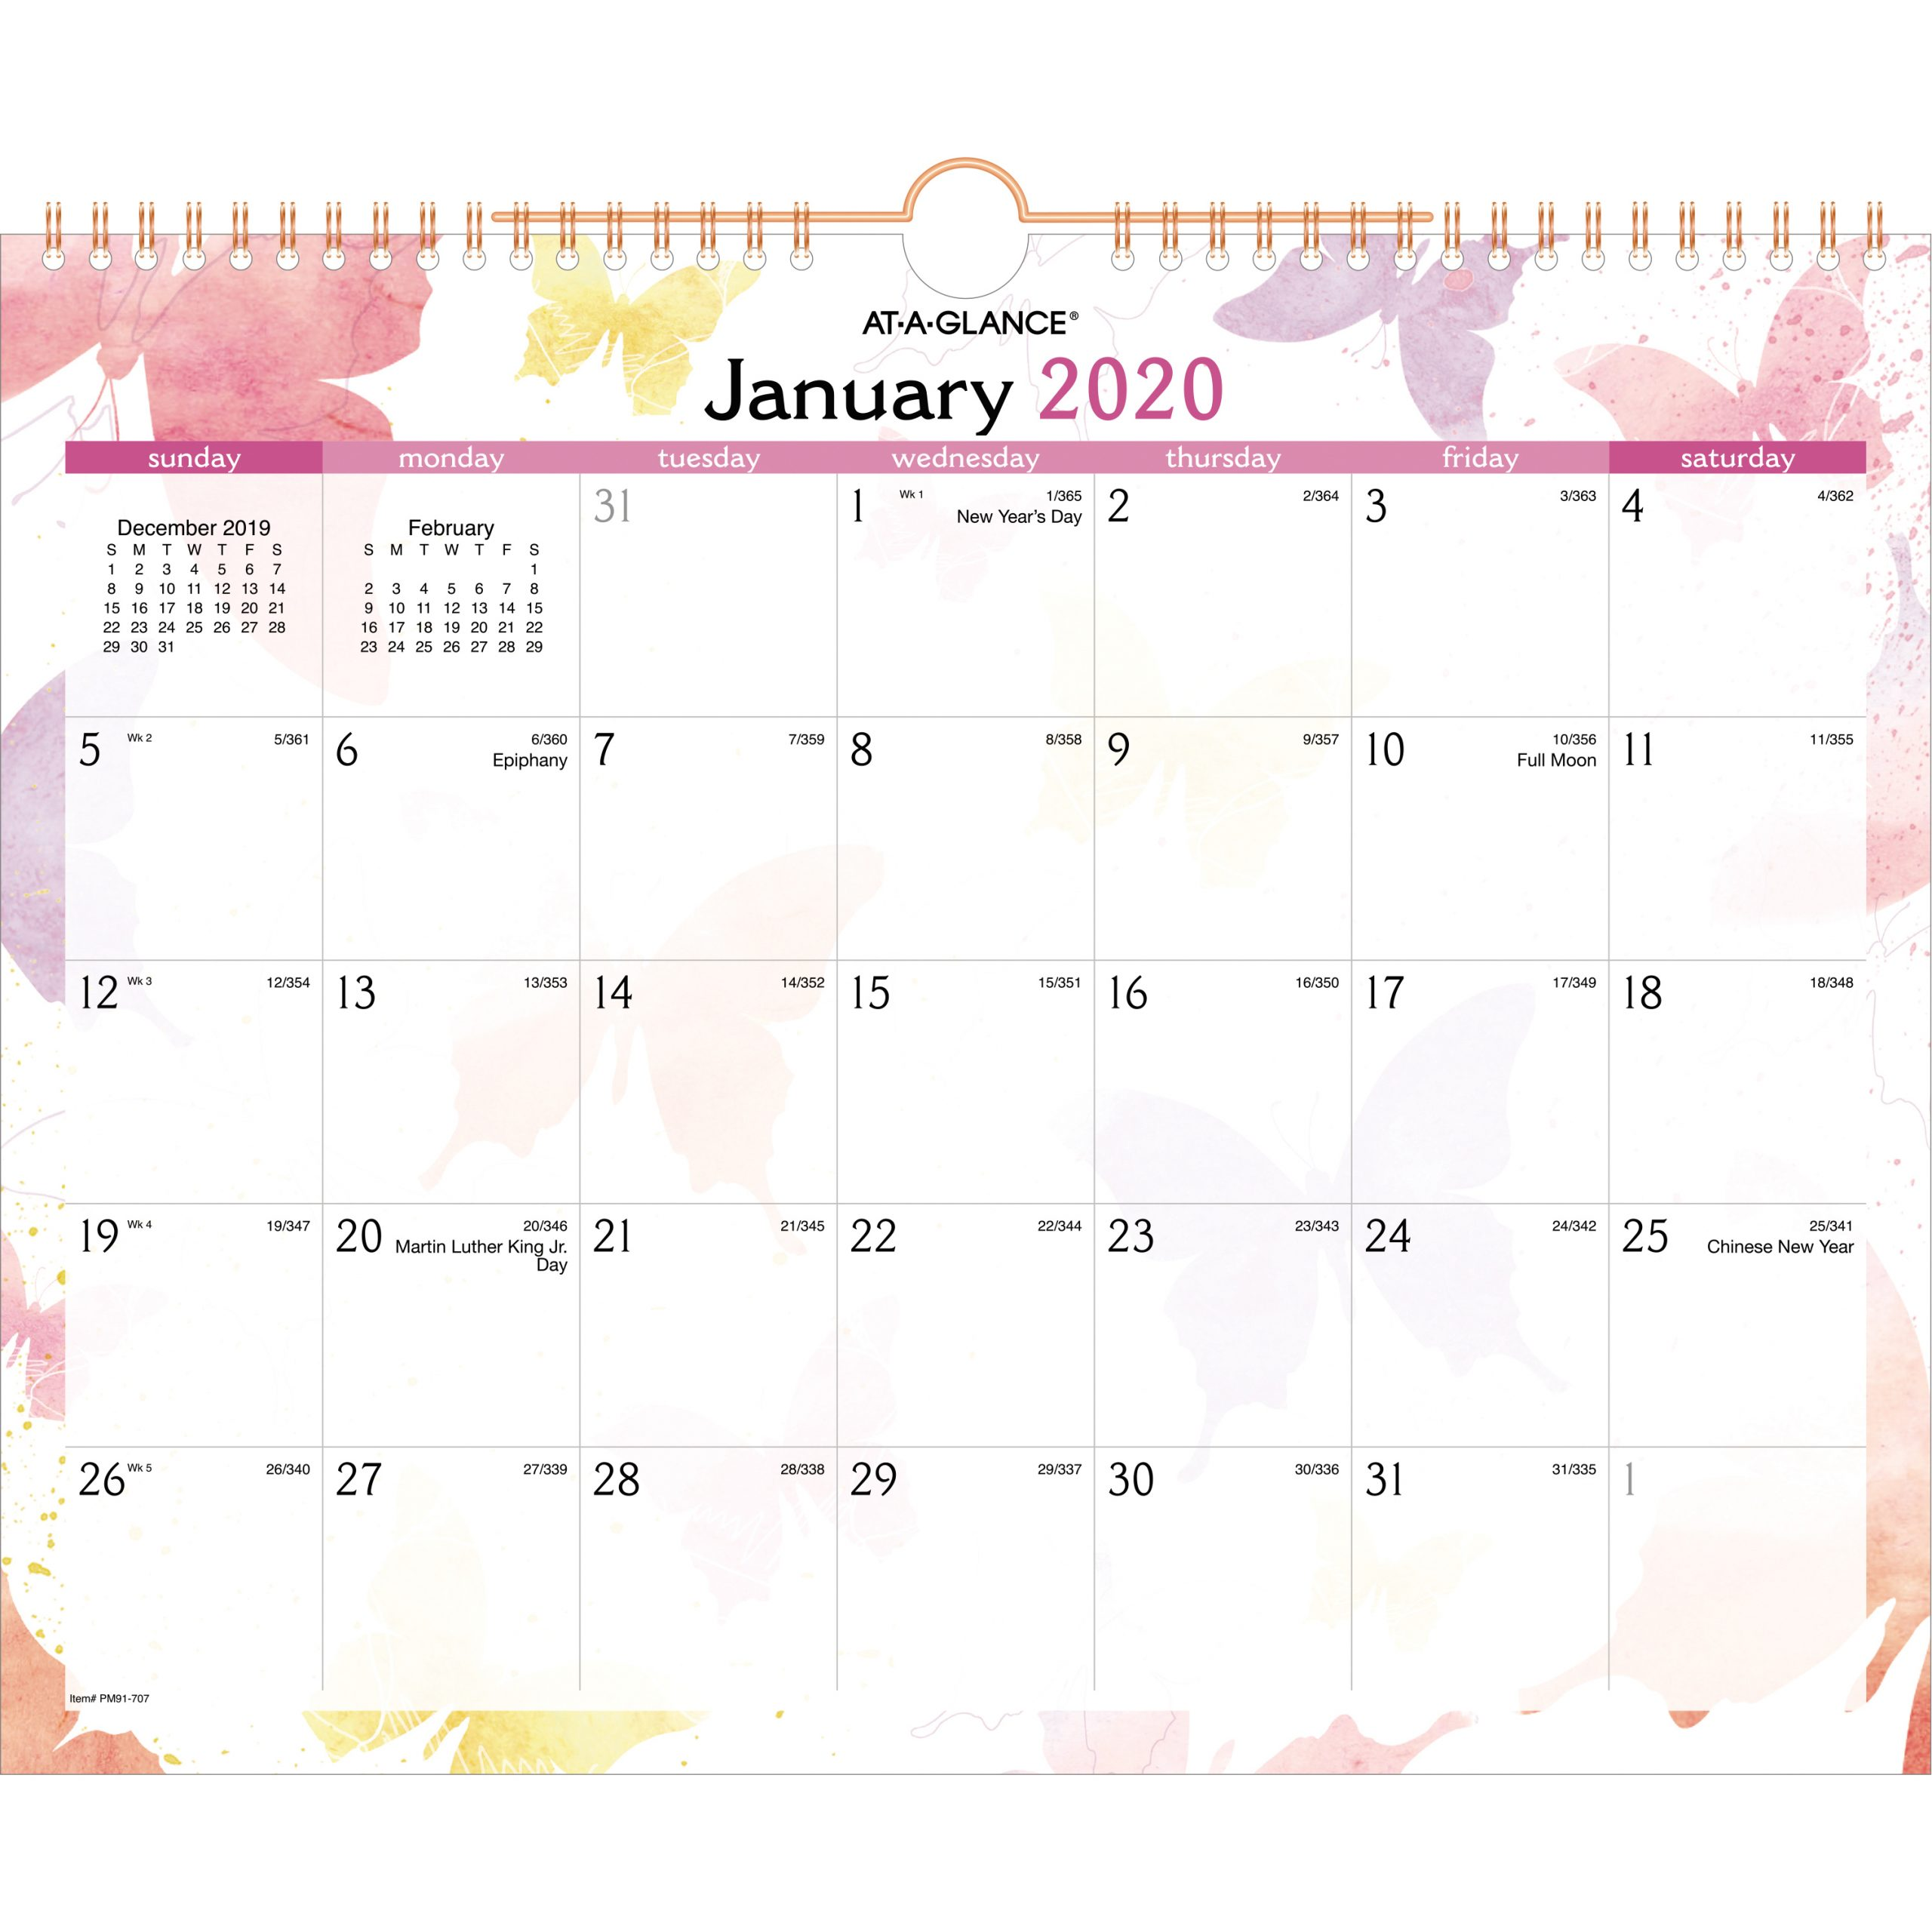 "At-A-Glance Watercolors Monthly Wall Calendar - Yes - Monthly - 1 Year -  January 2020 Till December 2020 - 1 Month Single Page Layout - 15"" X 12"" -"